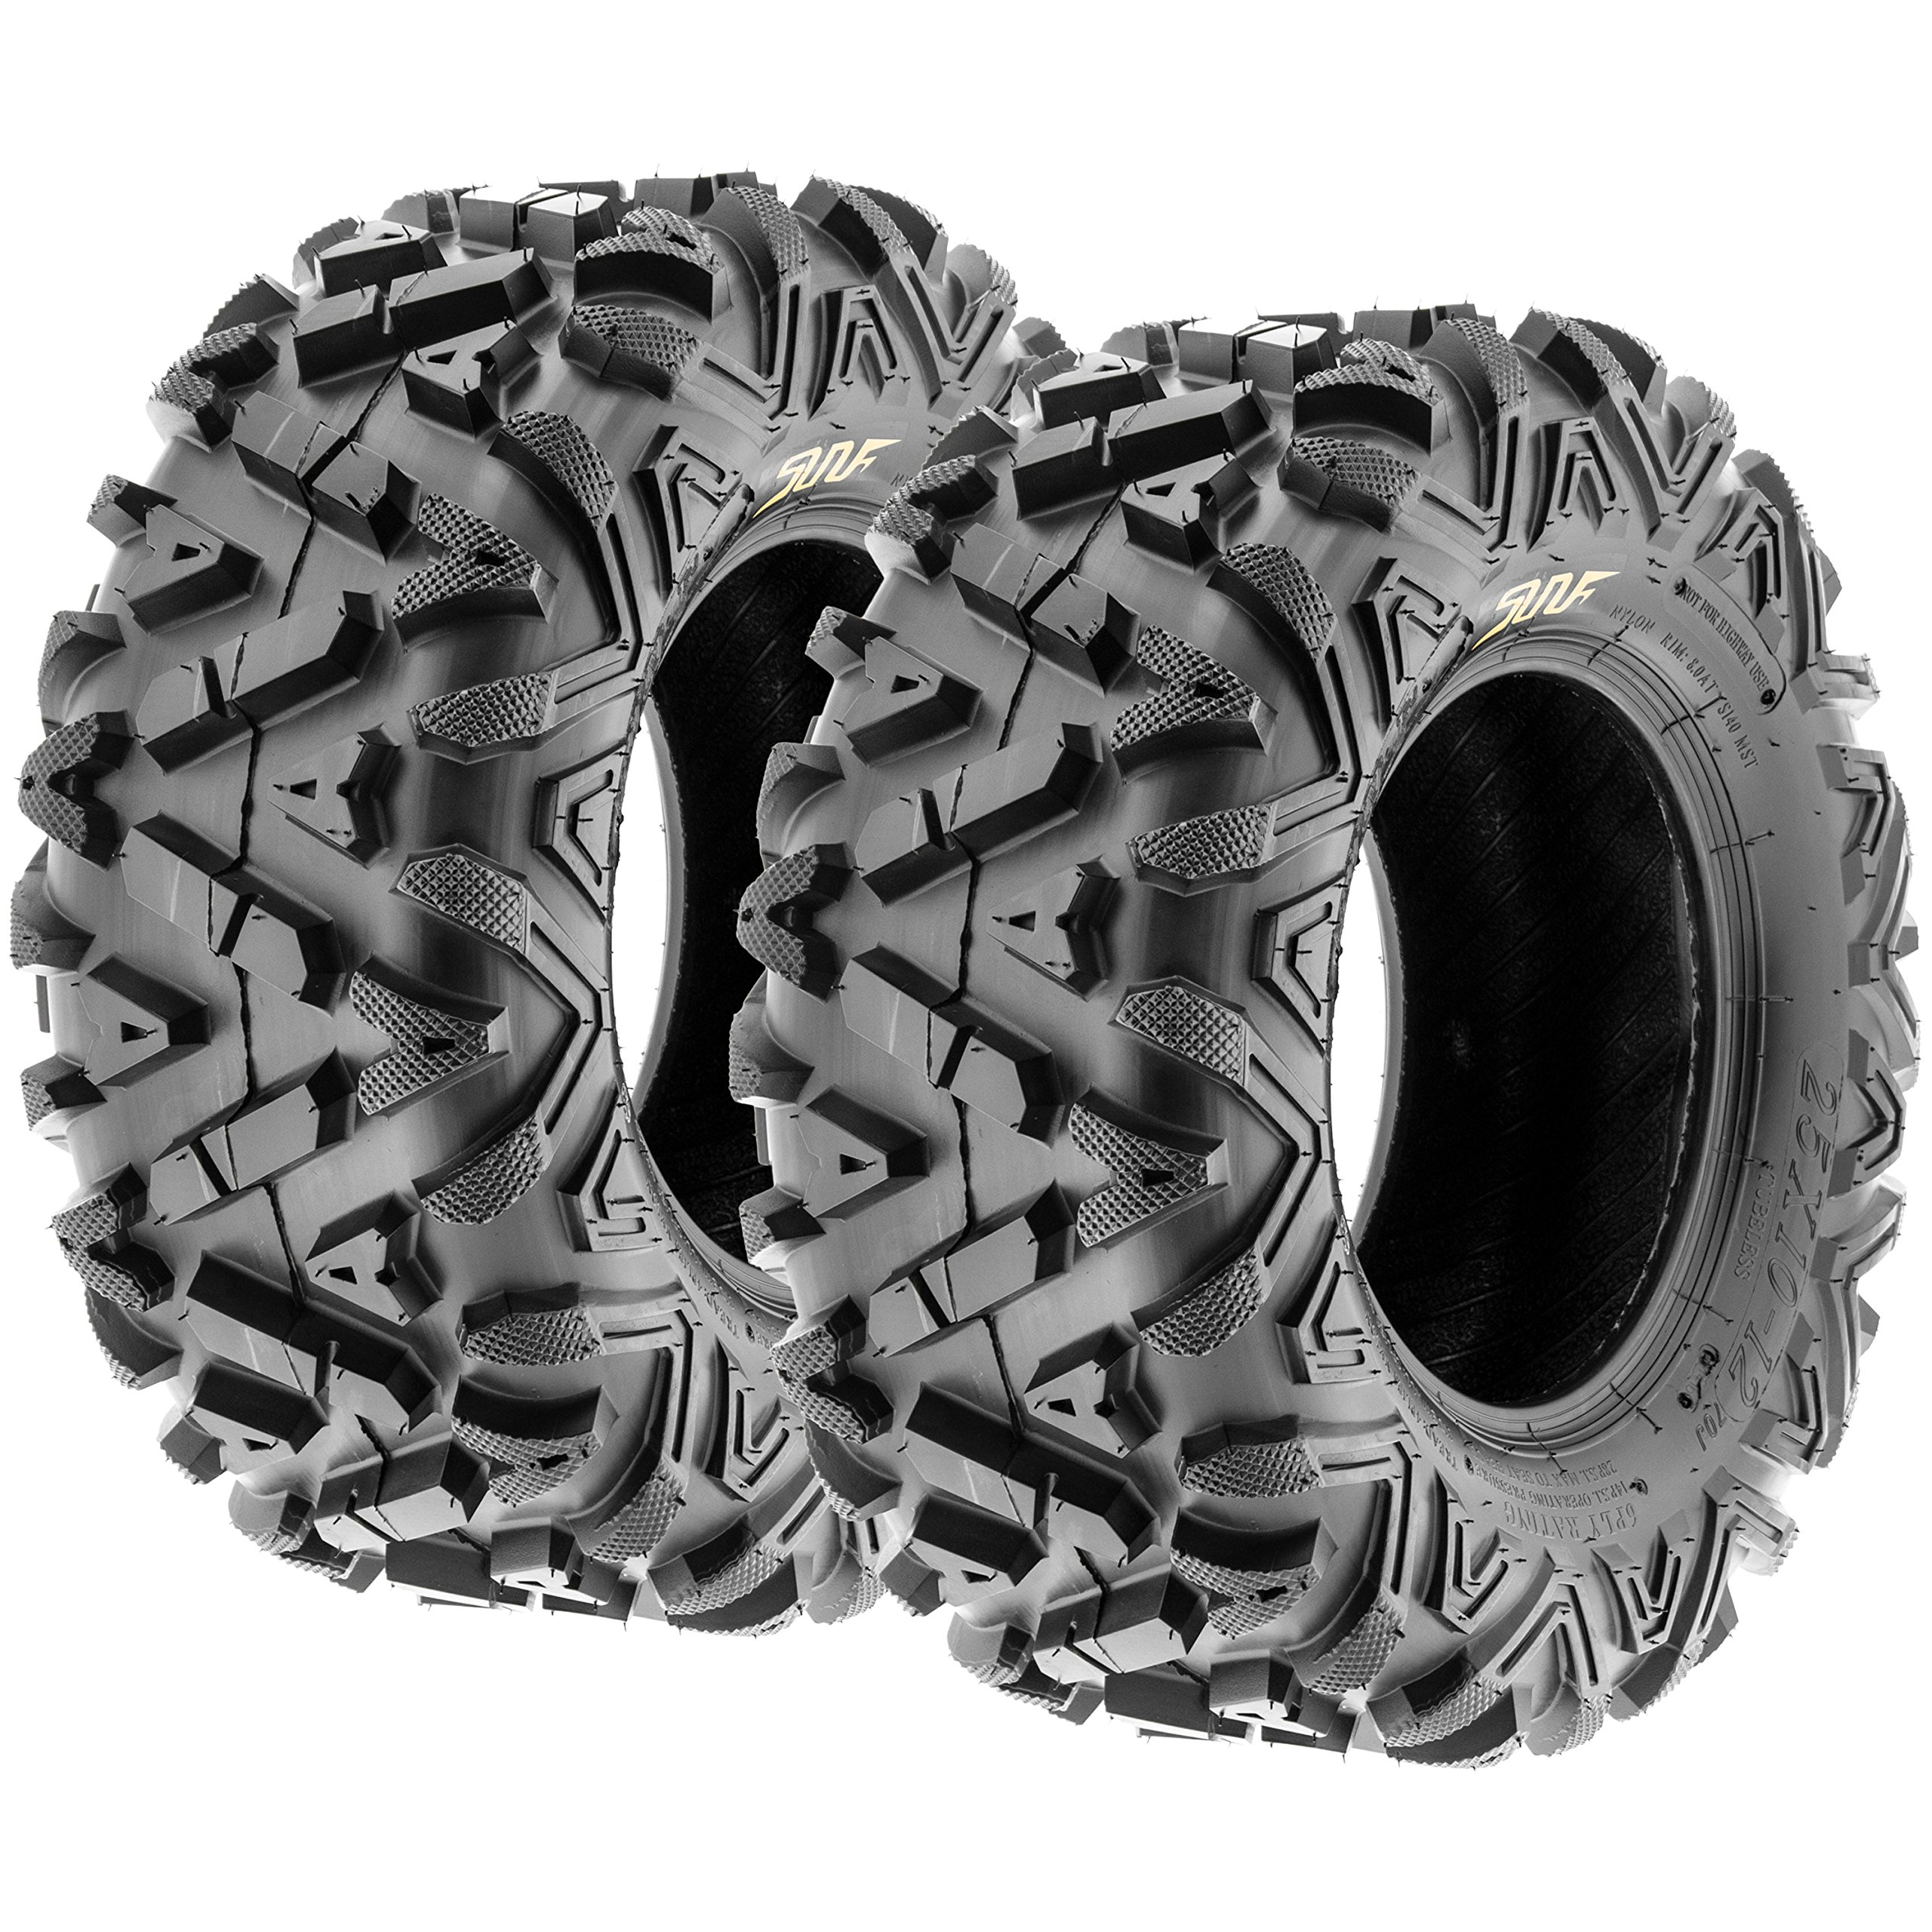 Pair of 2 SunF A033 Power.I AT 25x10-11 ATV UTV Off-Road Tires, All-Terrain, 6 PR, Tubeless by SUNF (Image #1)